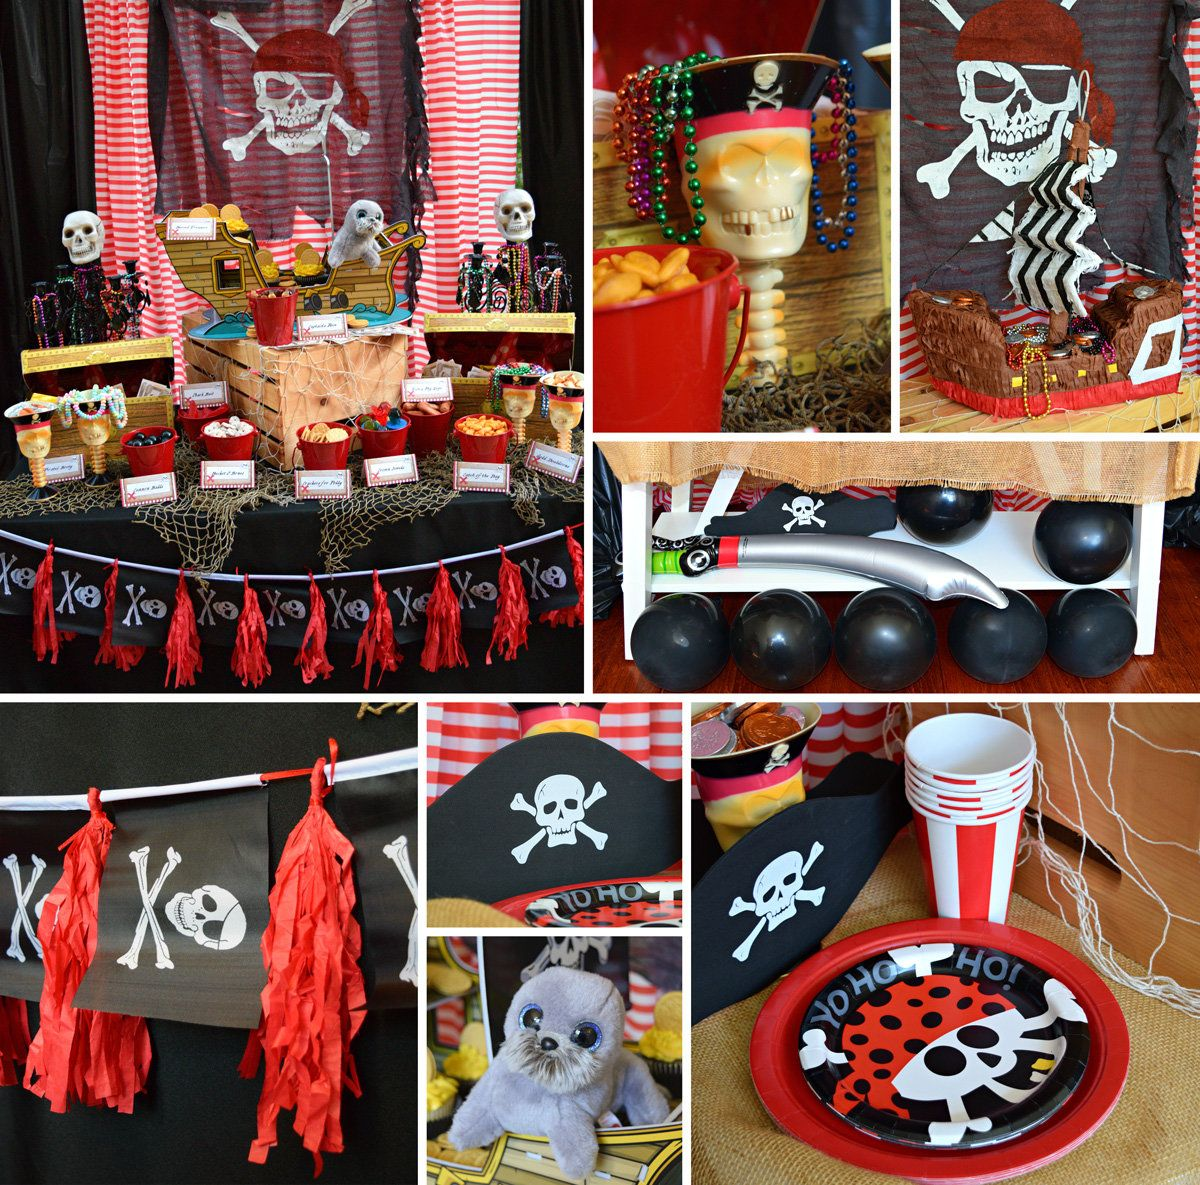 Pirate Party Decorations Pirate Party Ideas Pirate Party Pirate